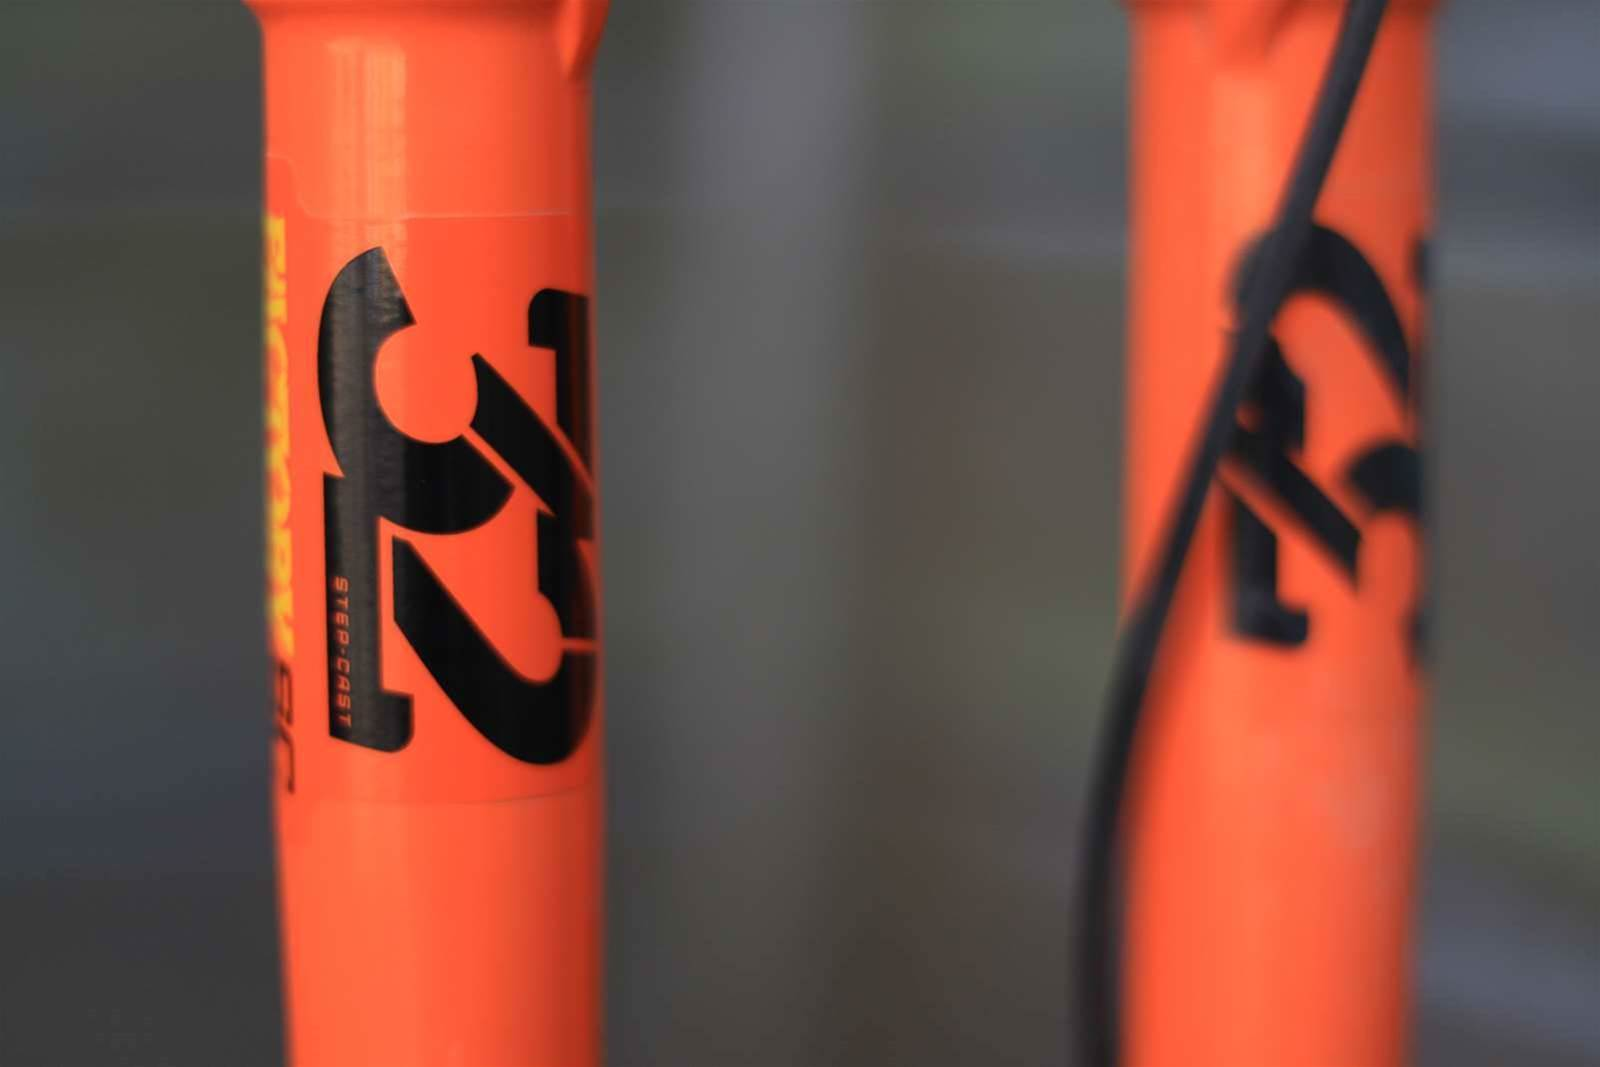 TESTED: Fox 32 SC Factory suspension fork